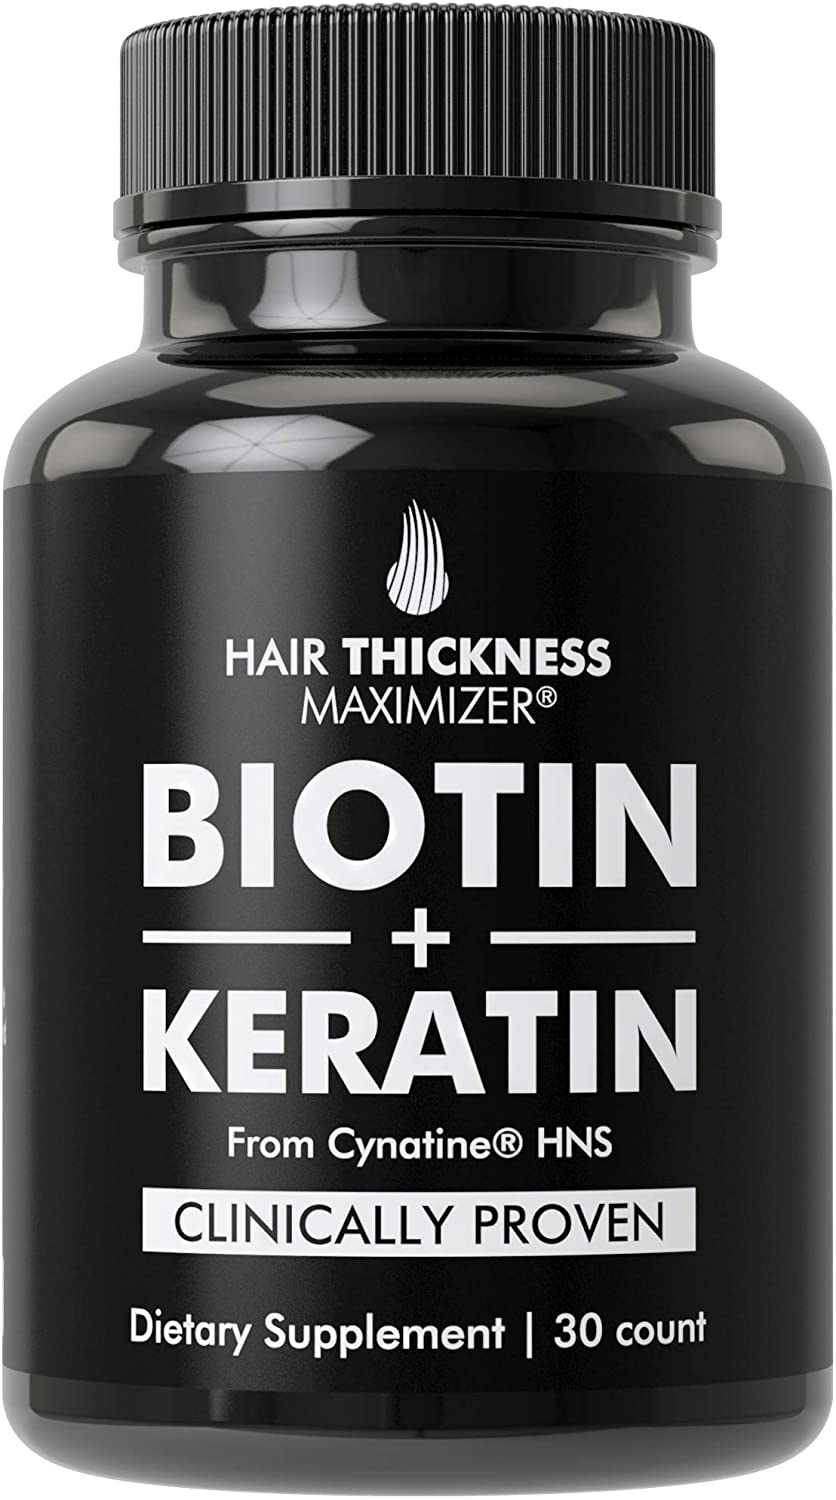 Biotin 10000mcg + Clinically Proven Keratin for Hair Growth. Vegan Regrowth Capsules Supplement for Men & Women. Organic Coconut Oil, 10000 mcg B7 Vitamins, Cynatine Keratin. DHT Blocker, Hair Loss